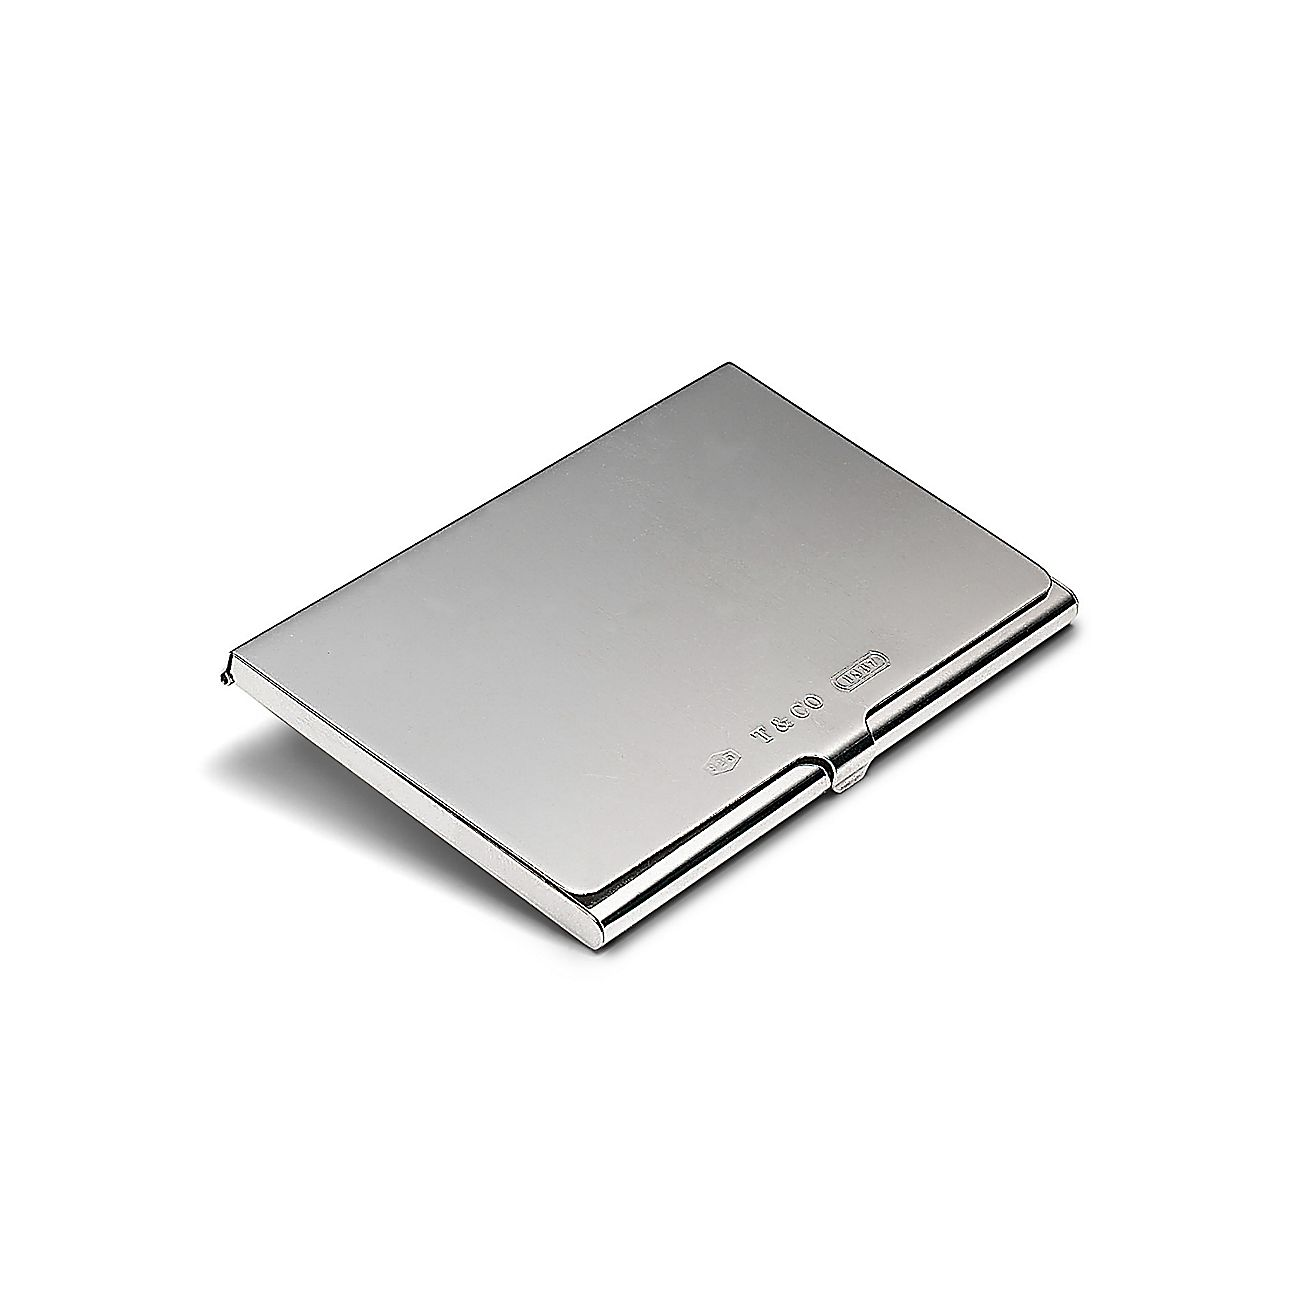 Tiffany 1837r business card case in sterling silver for Tiffany business card case